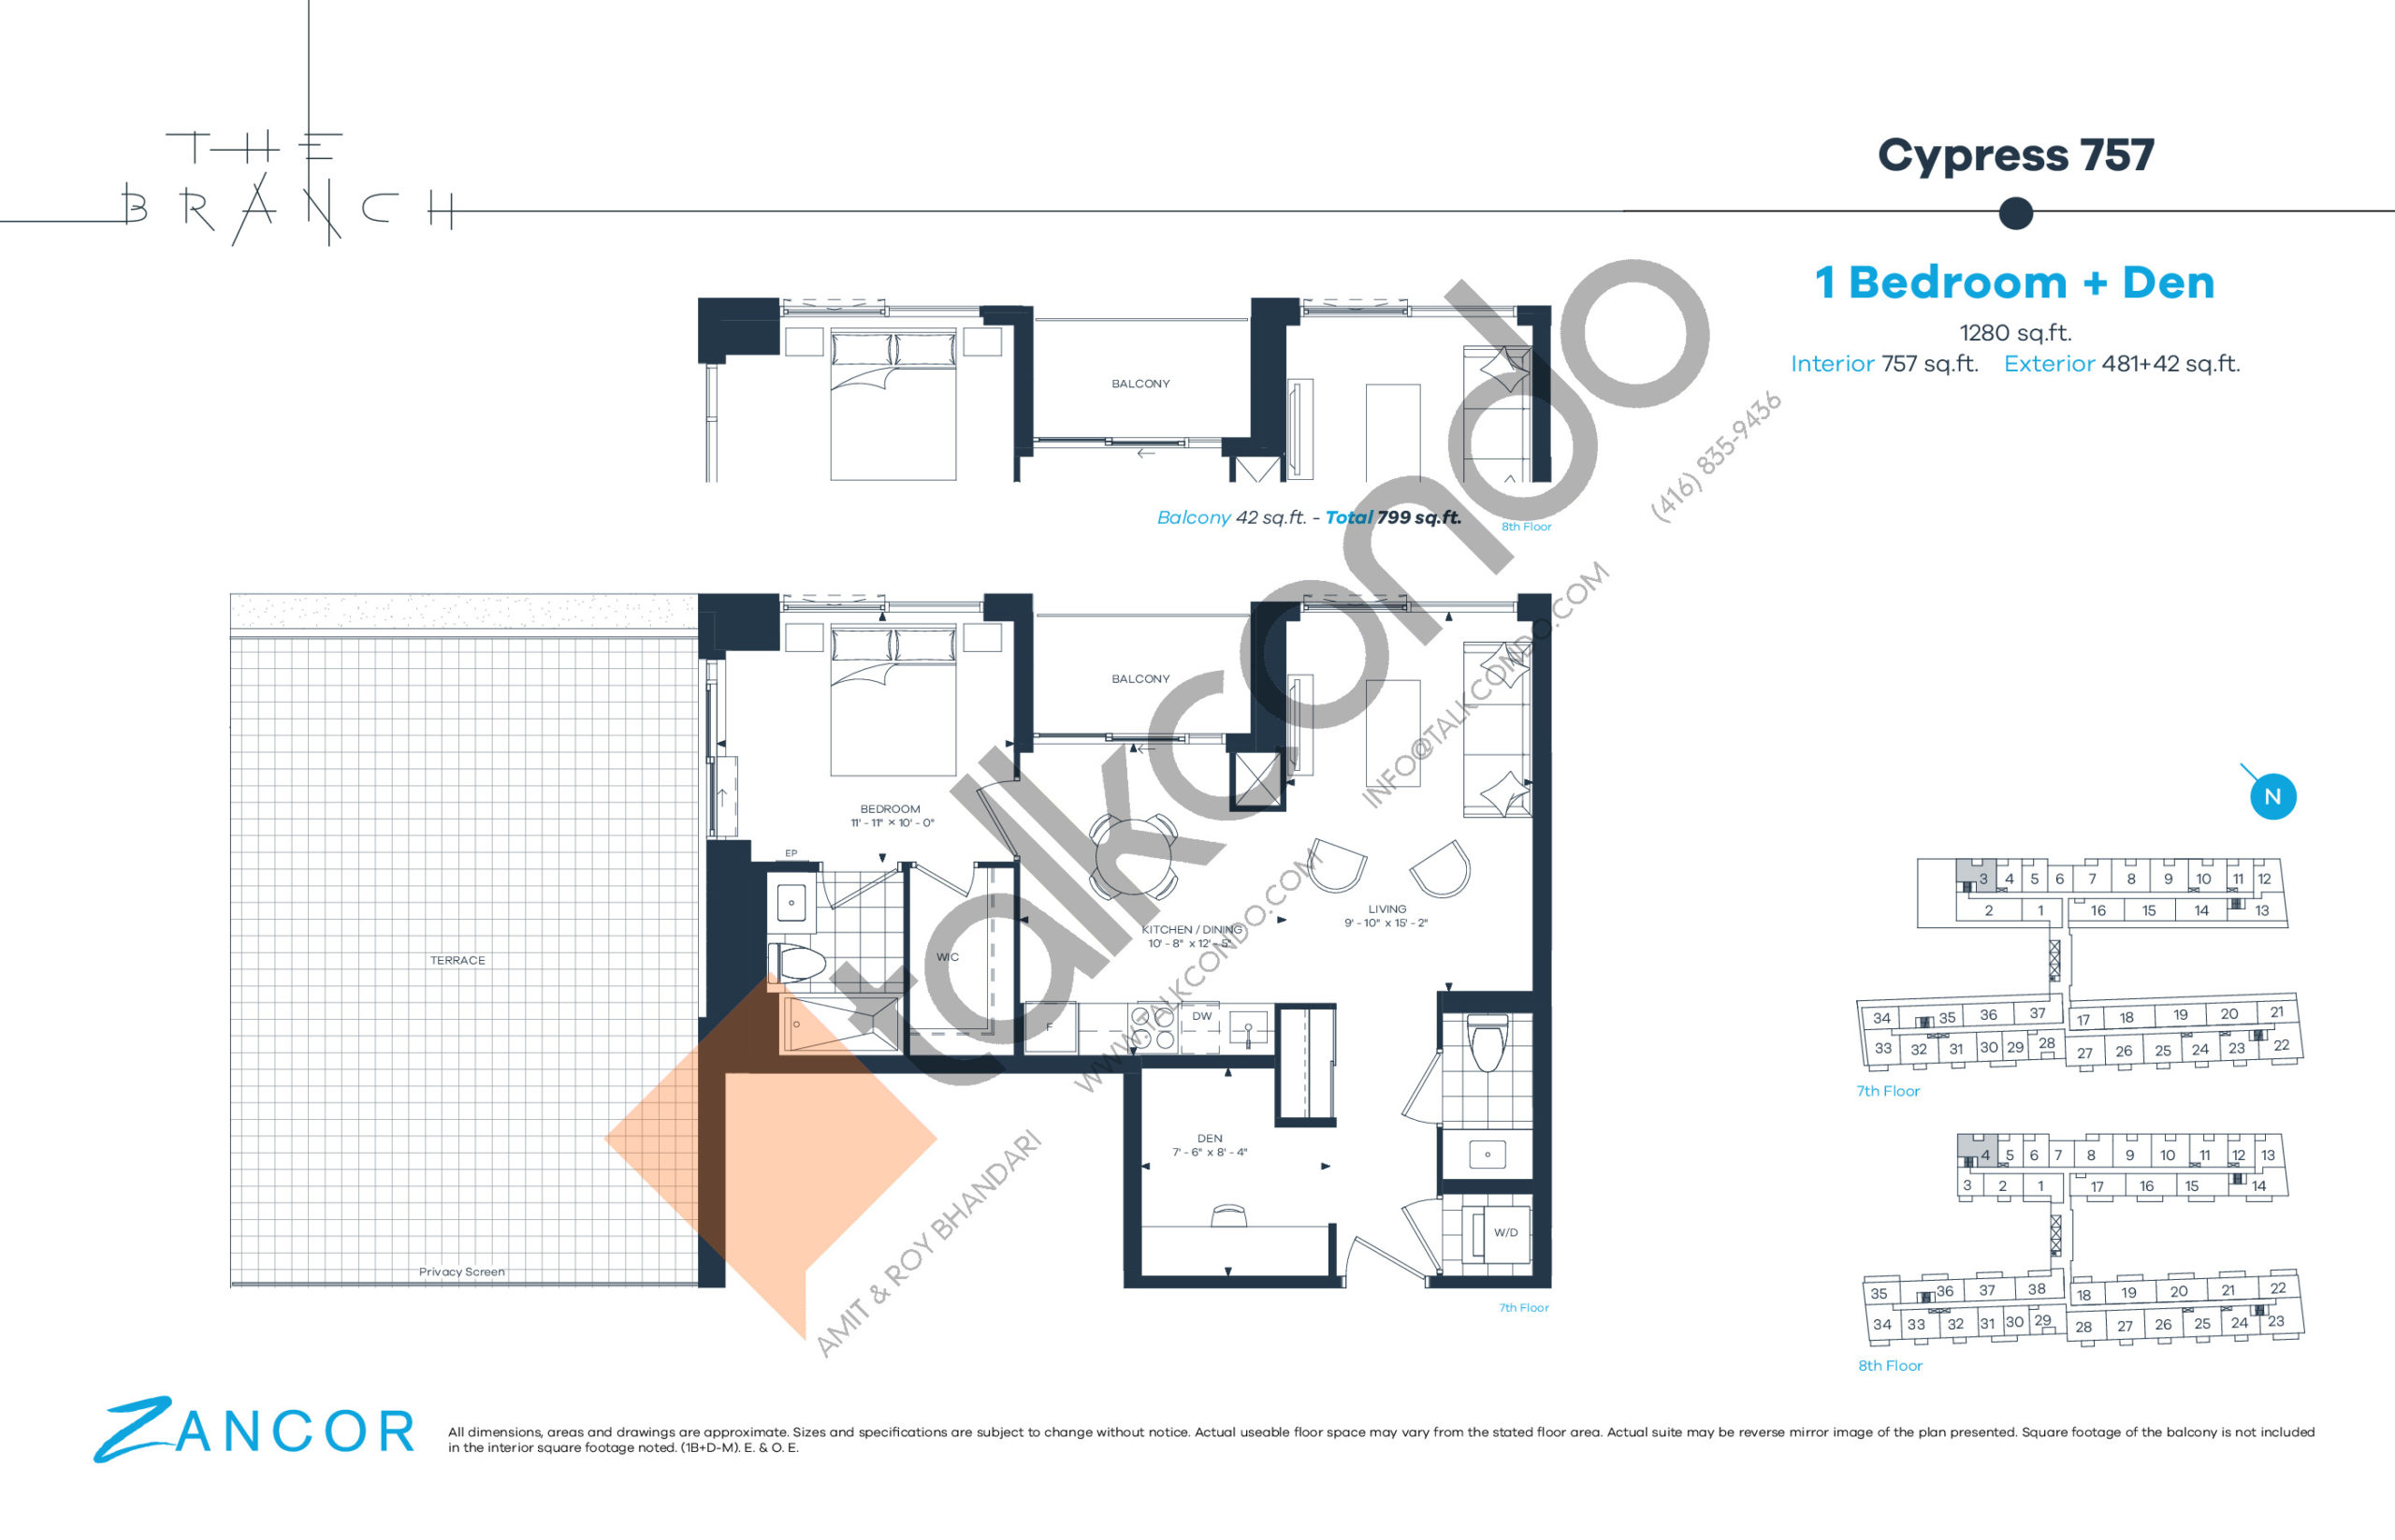 Cypress 757 Floor Plan at The Branch Condos - 757 sq.ft